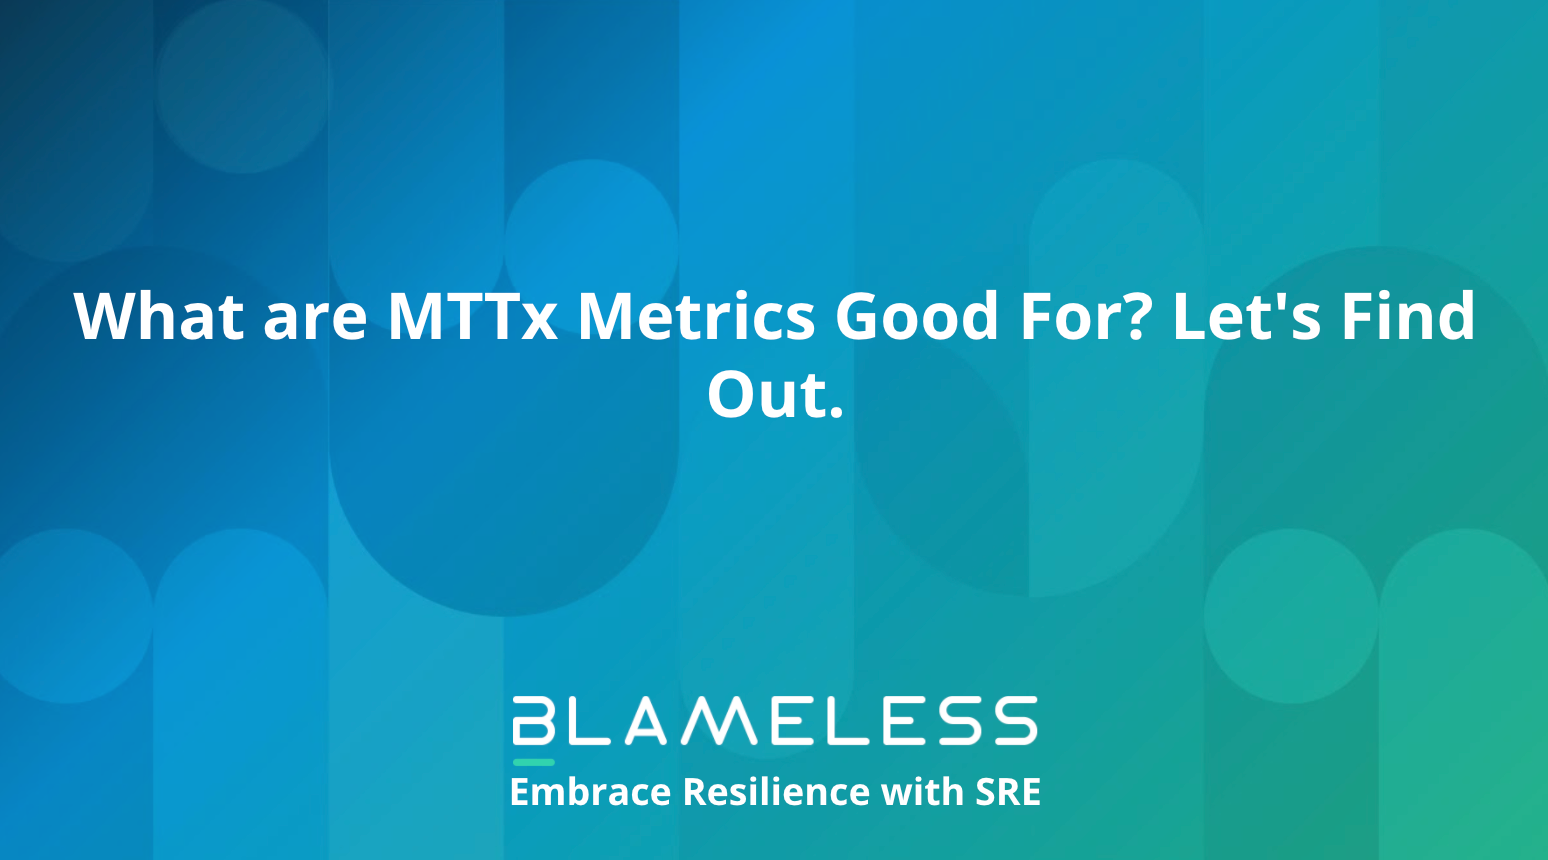 What are MTTx Metrics Good For? Let's Find Out.